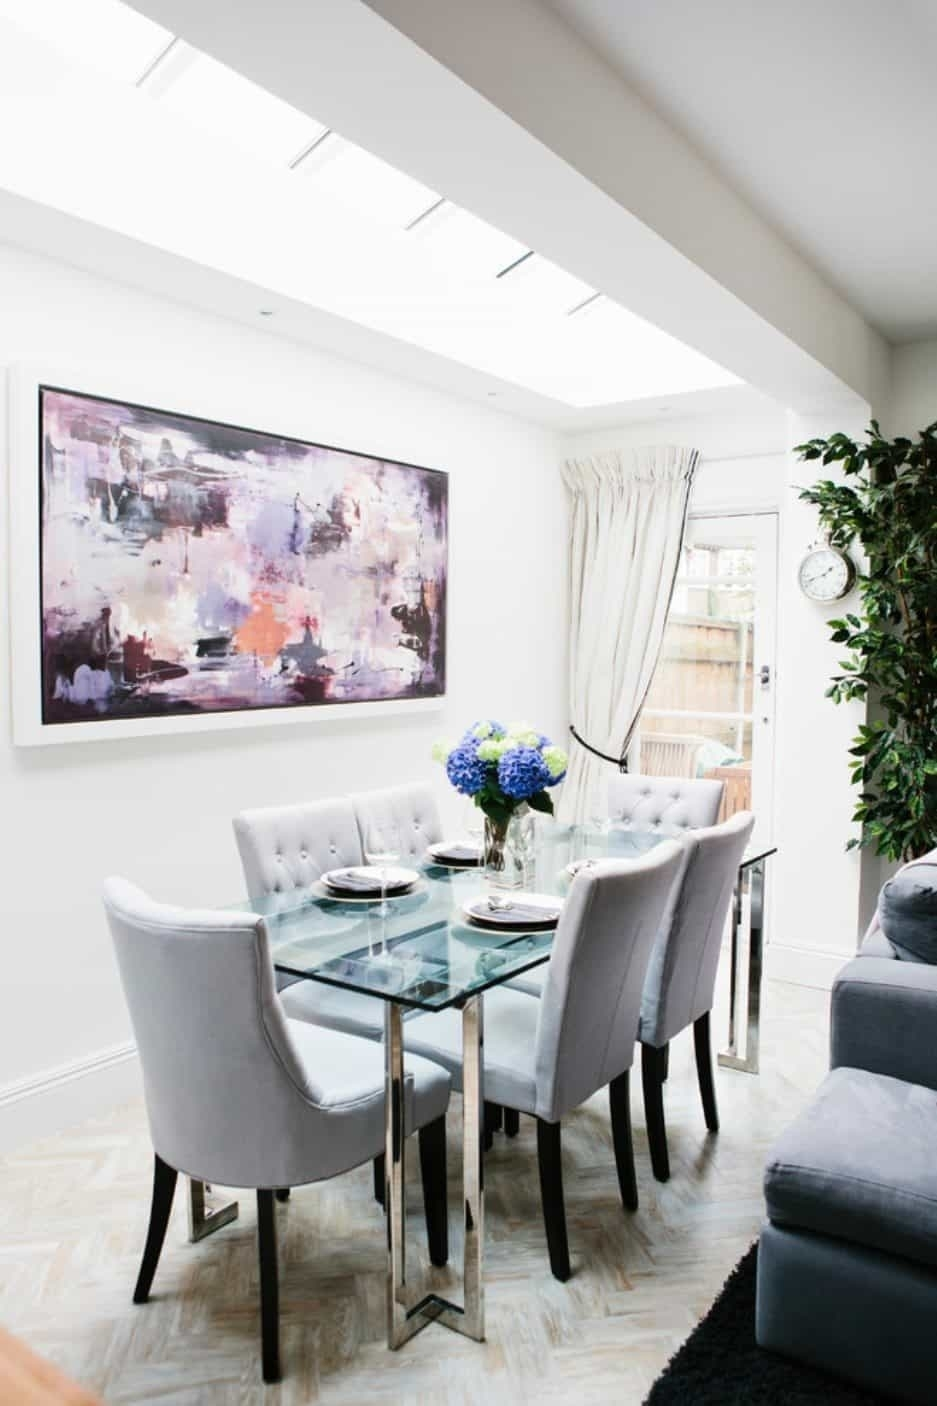 Dining Room With Glass Table And Abstract Wall Art – Cleaning Ways With Regard To Most Recently Released Abstract Wall Art For Dining Room (View 11 of 20)